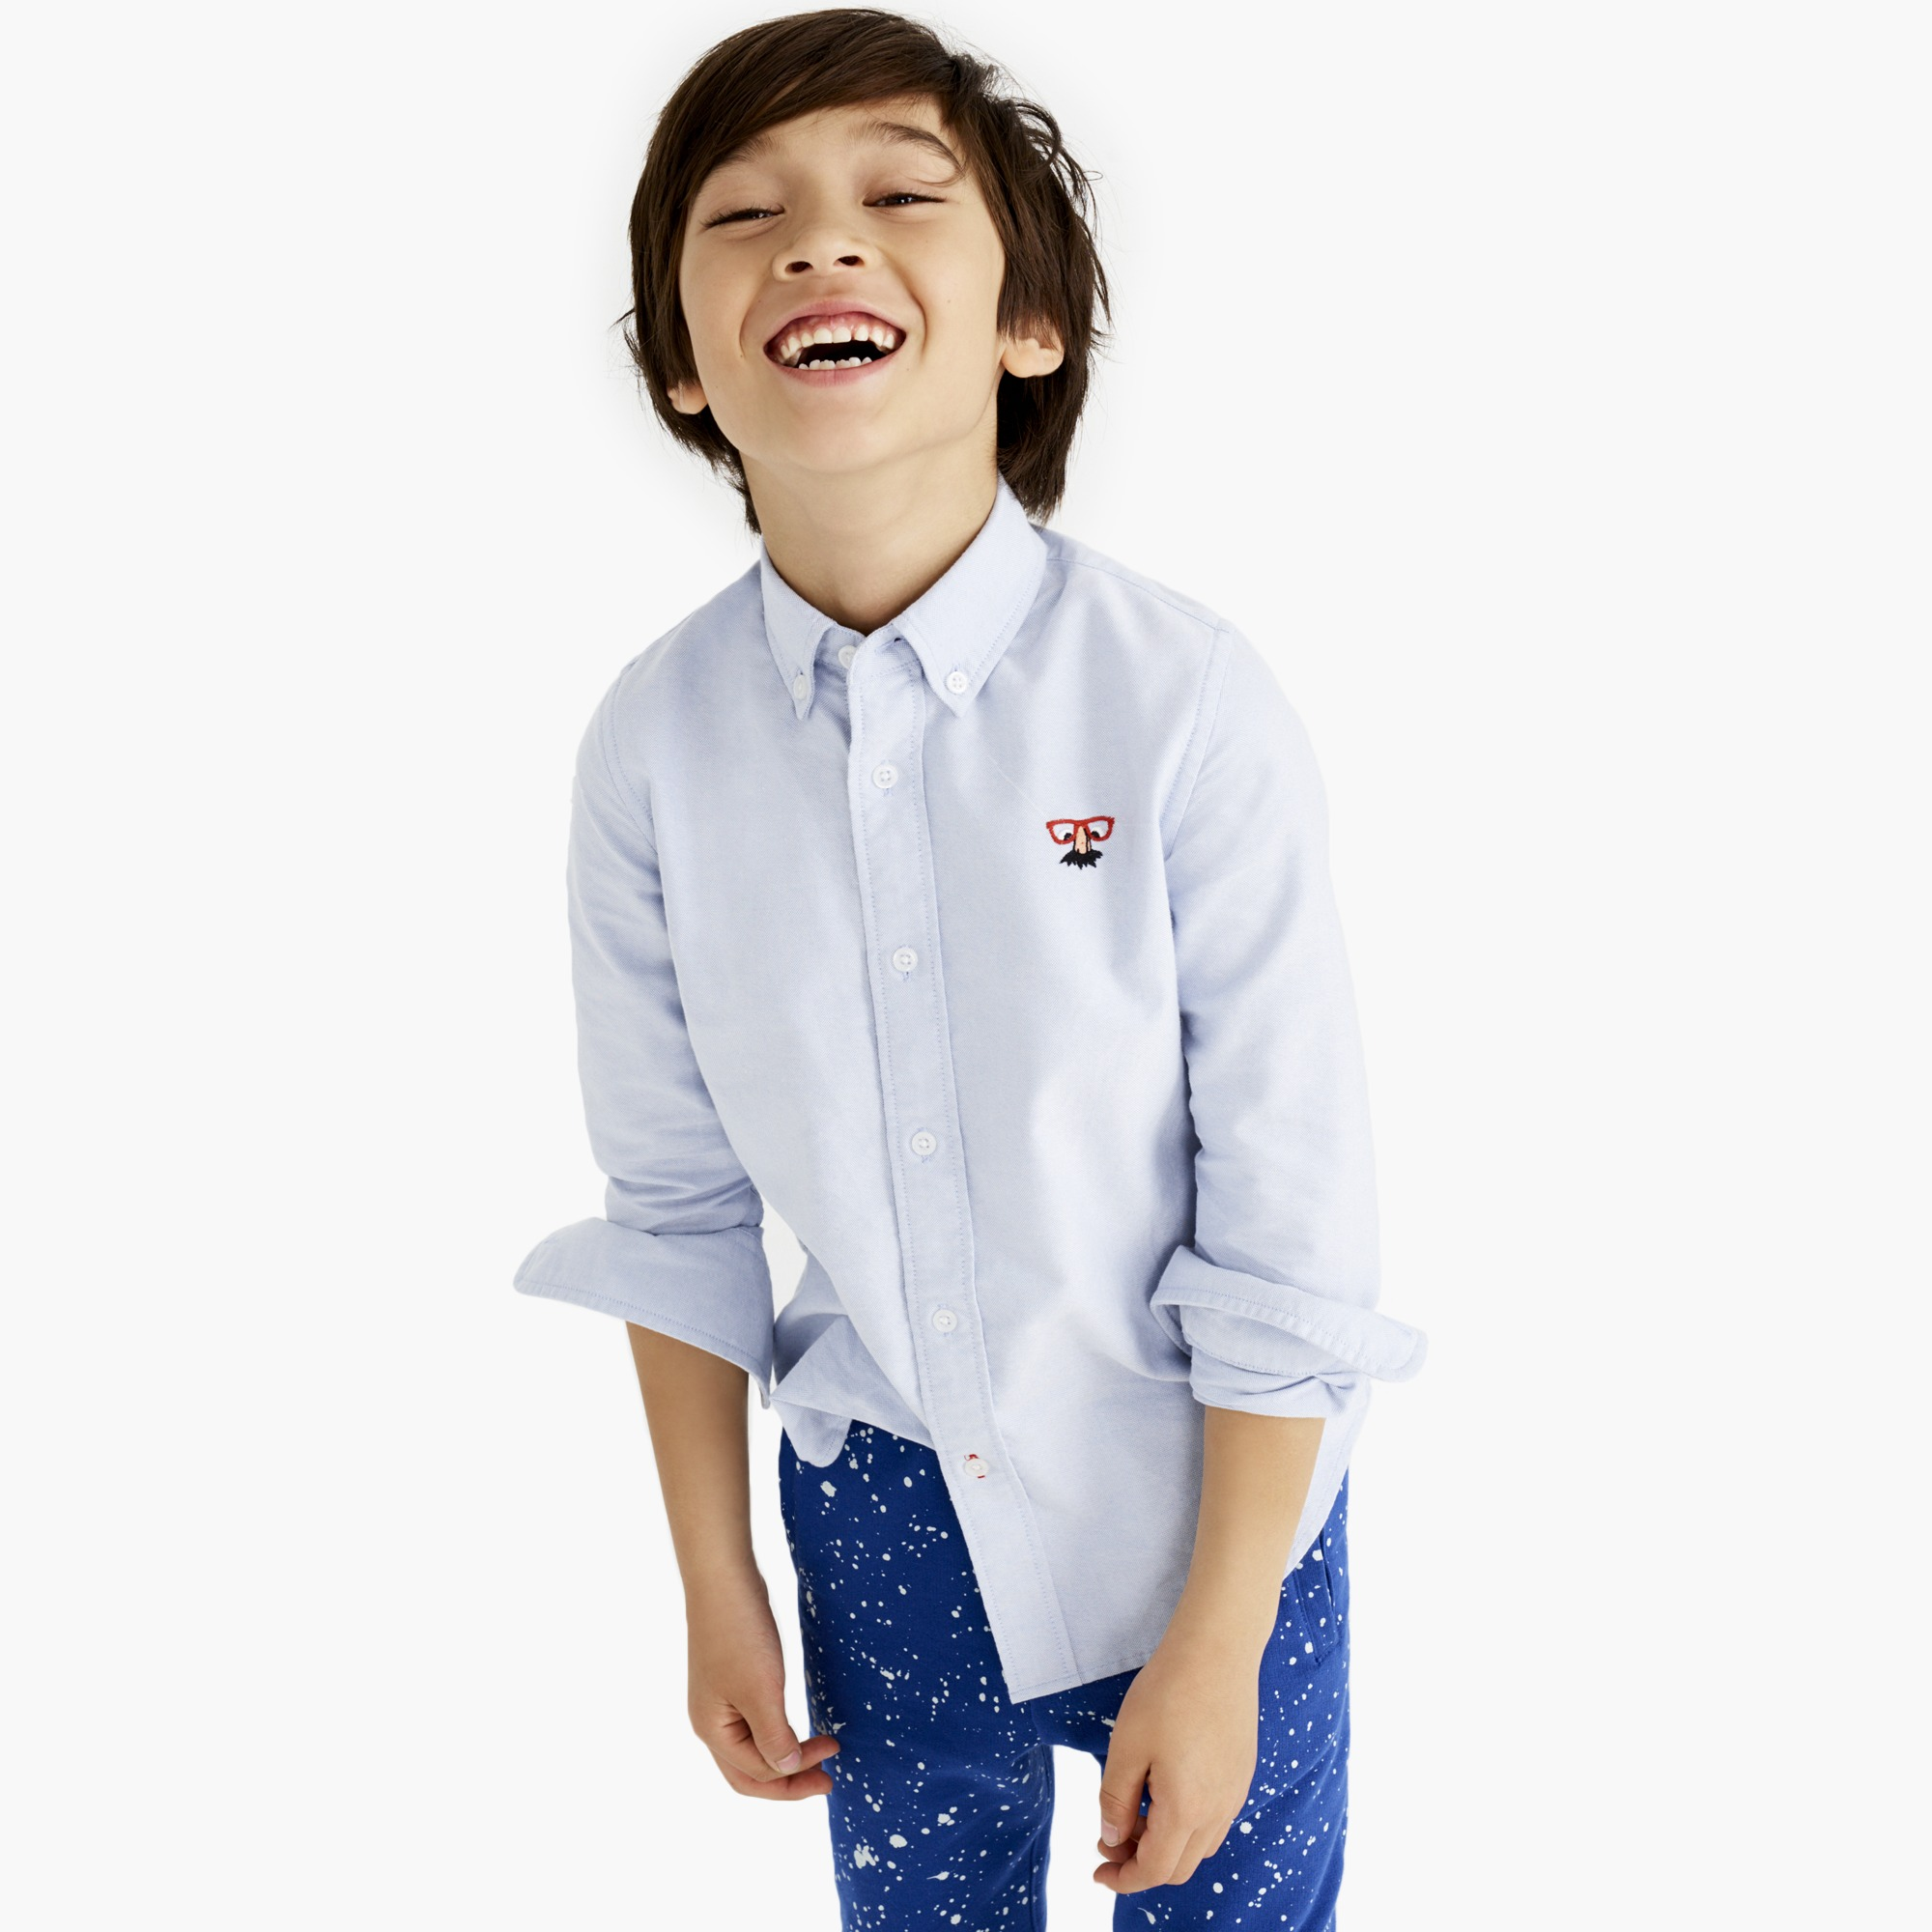 Image 1 for Boys' critter oxford shirt